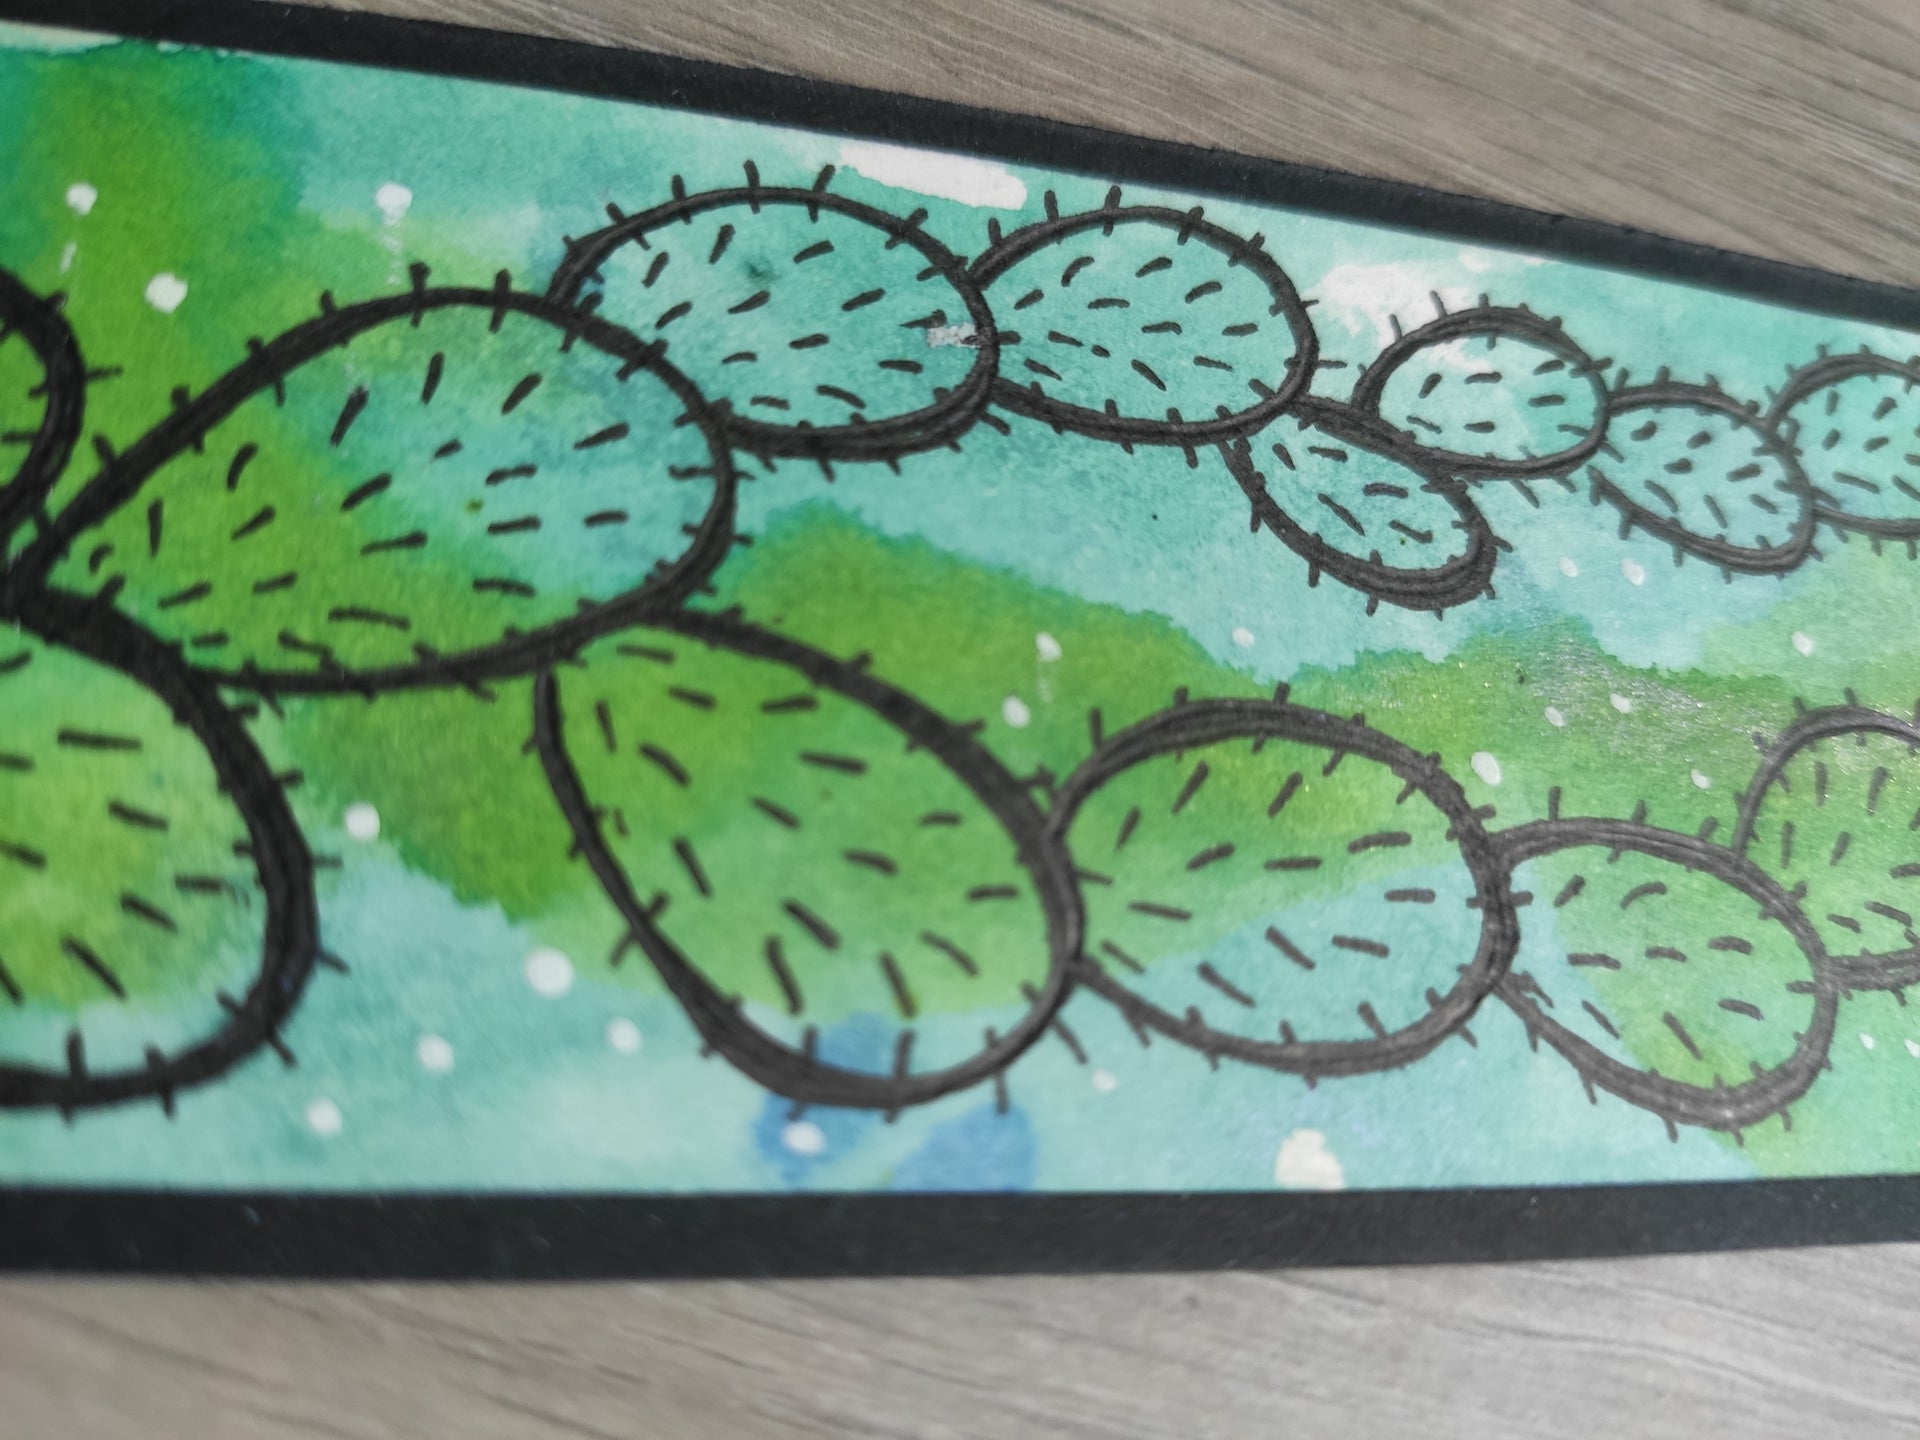 Handmade bookmarks with doodles, set 7